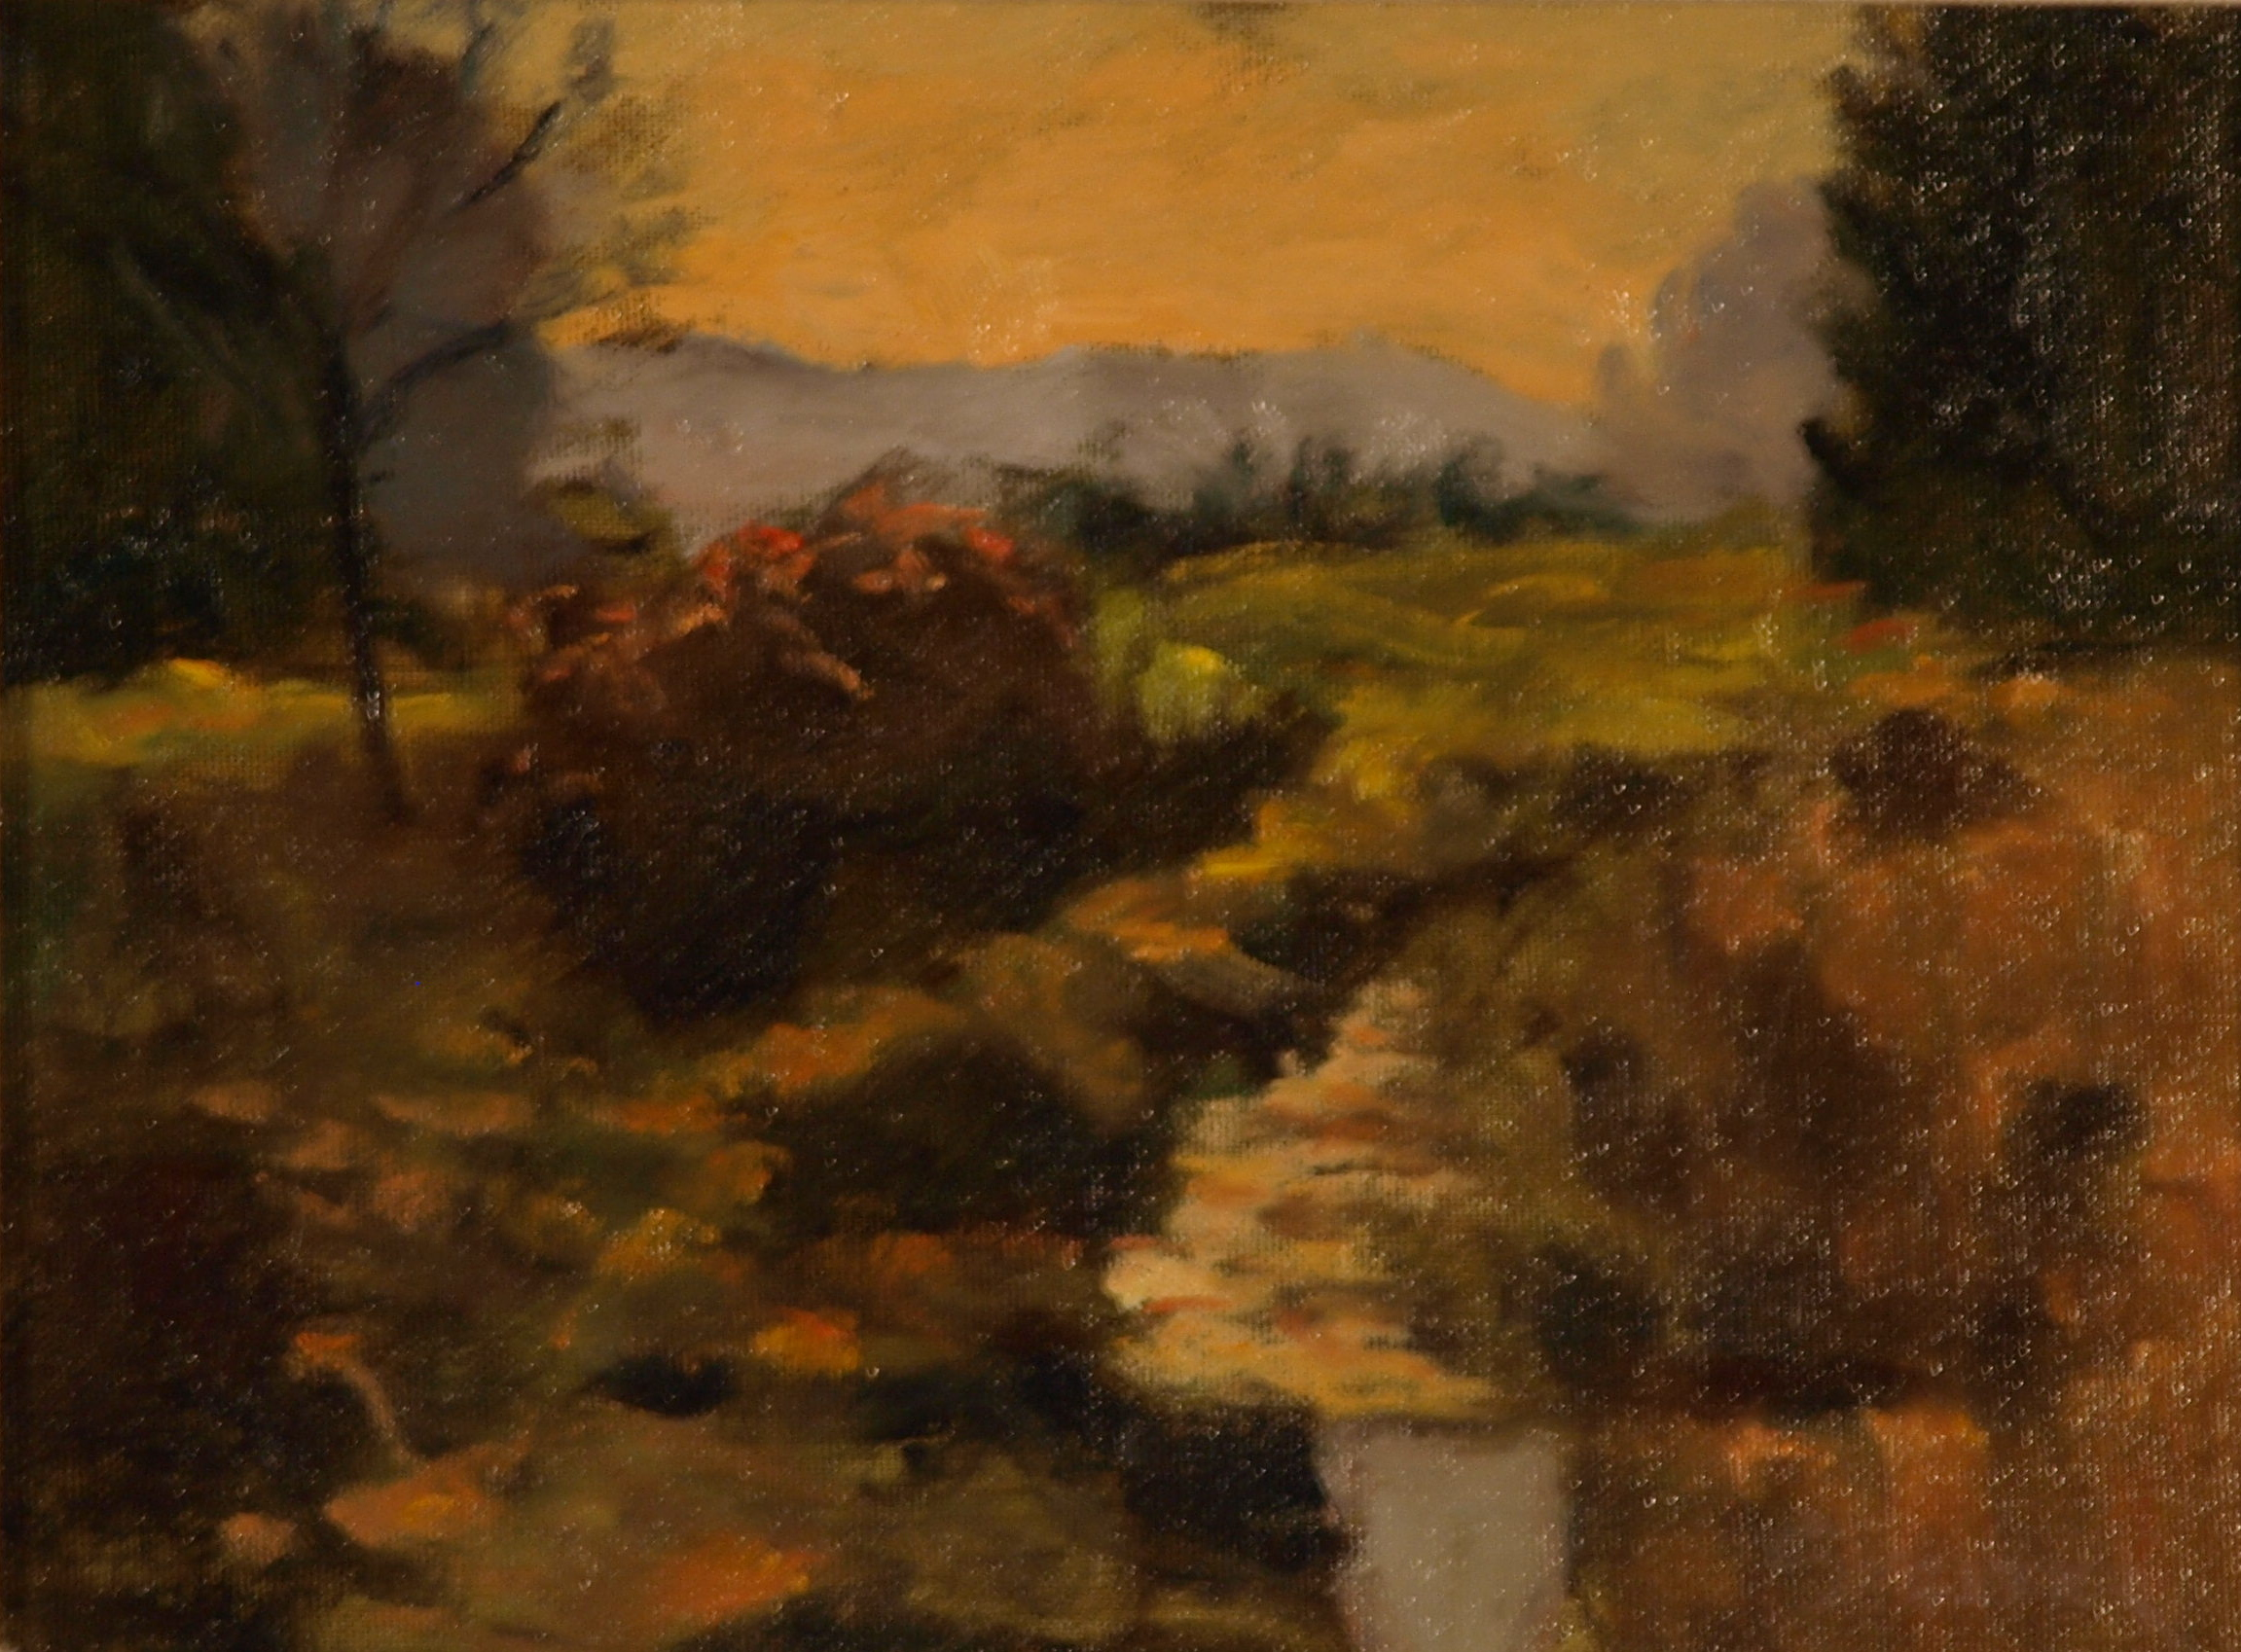 Brilliant Autumn Light, Oil on Canvas on Panel, 9 x 12 Inches, by Richard Stalter, $225